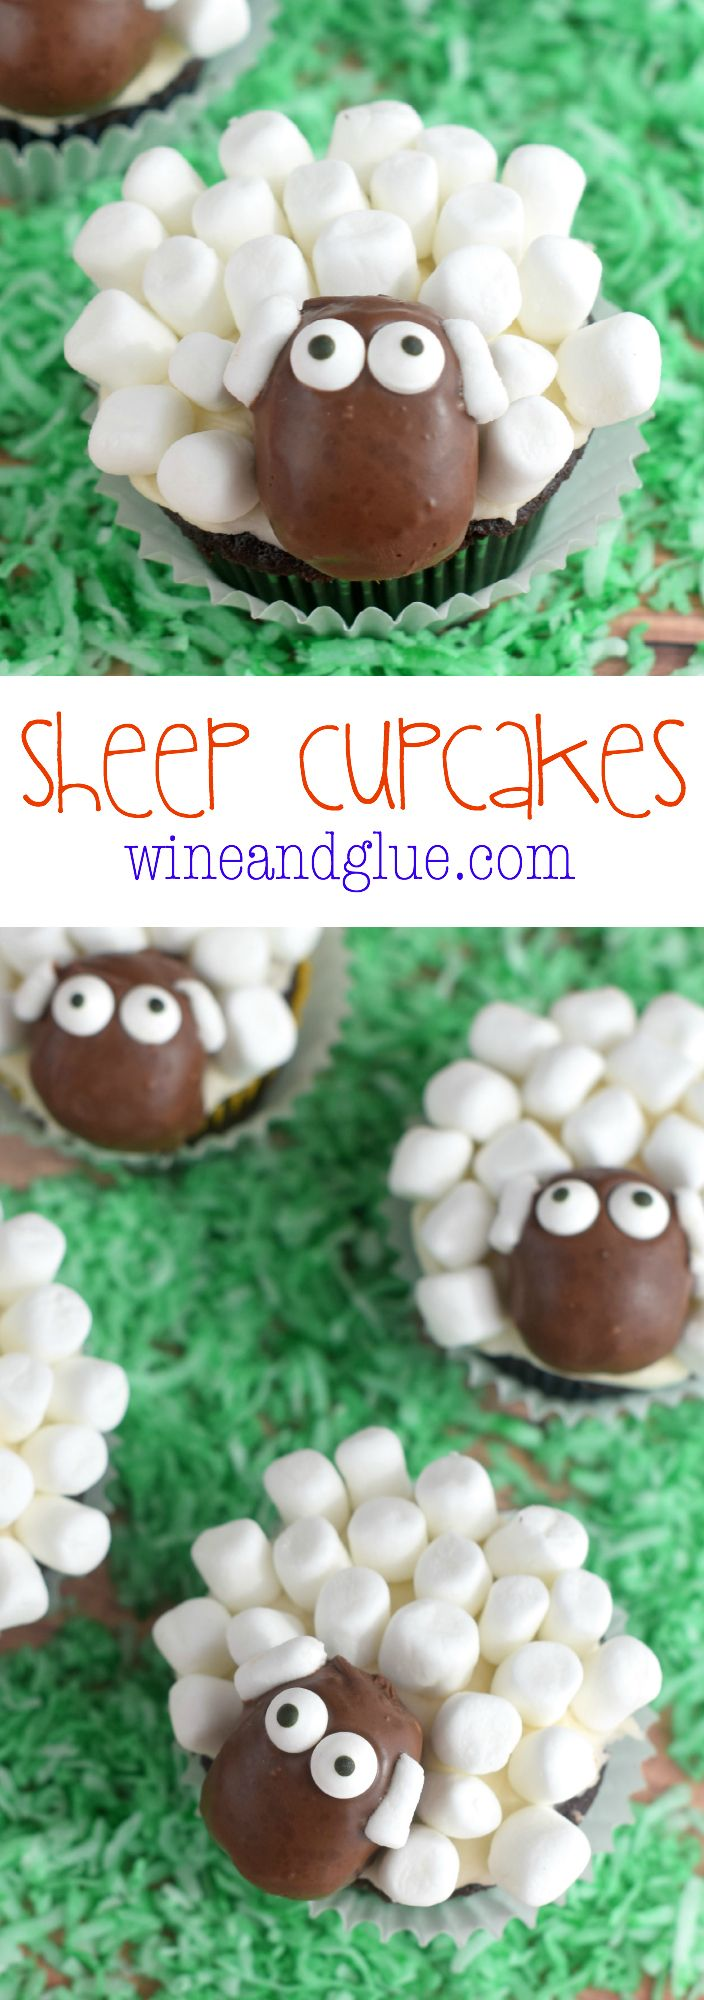 sheep cupcakes! | www.winendglue | from scratch chocolate